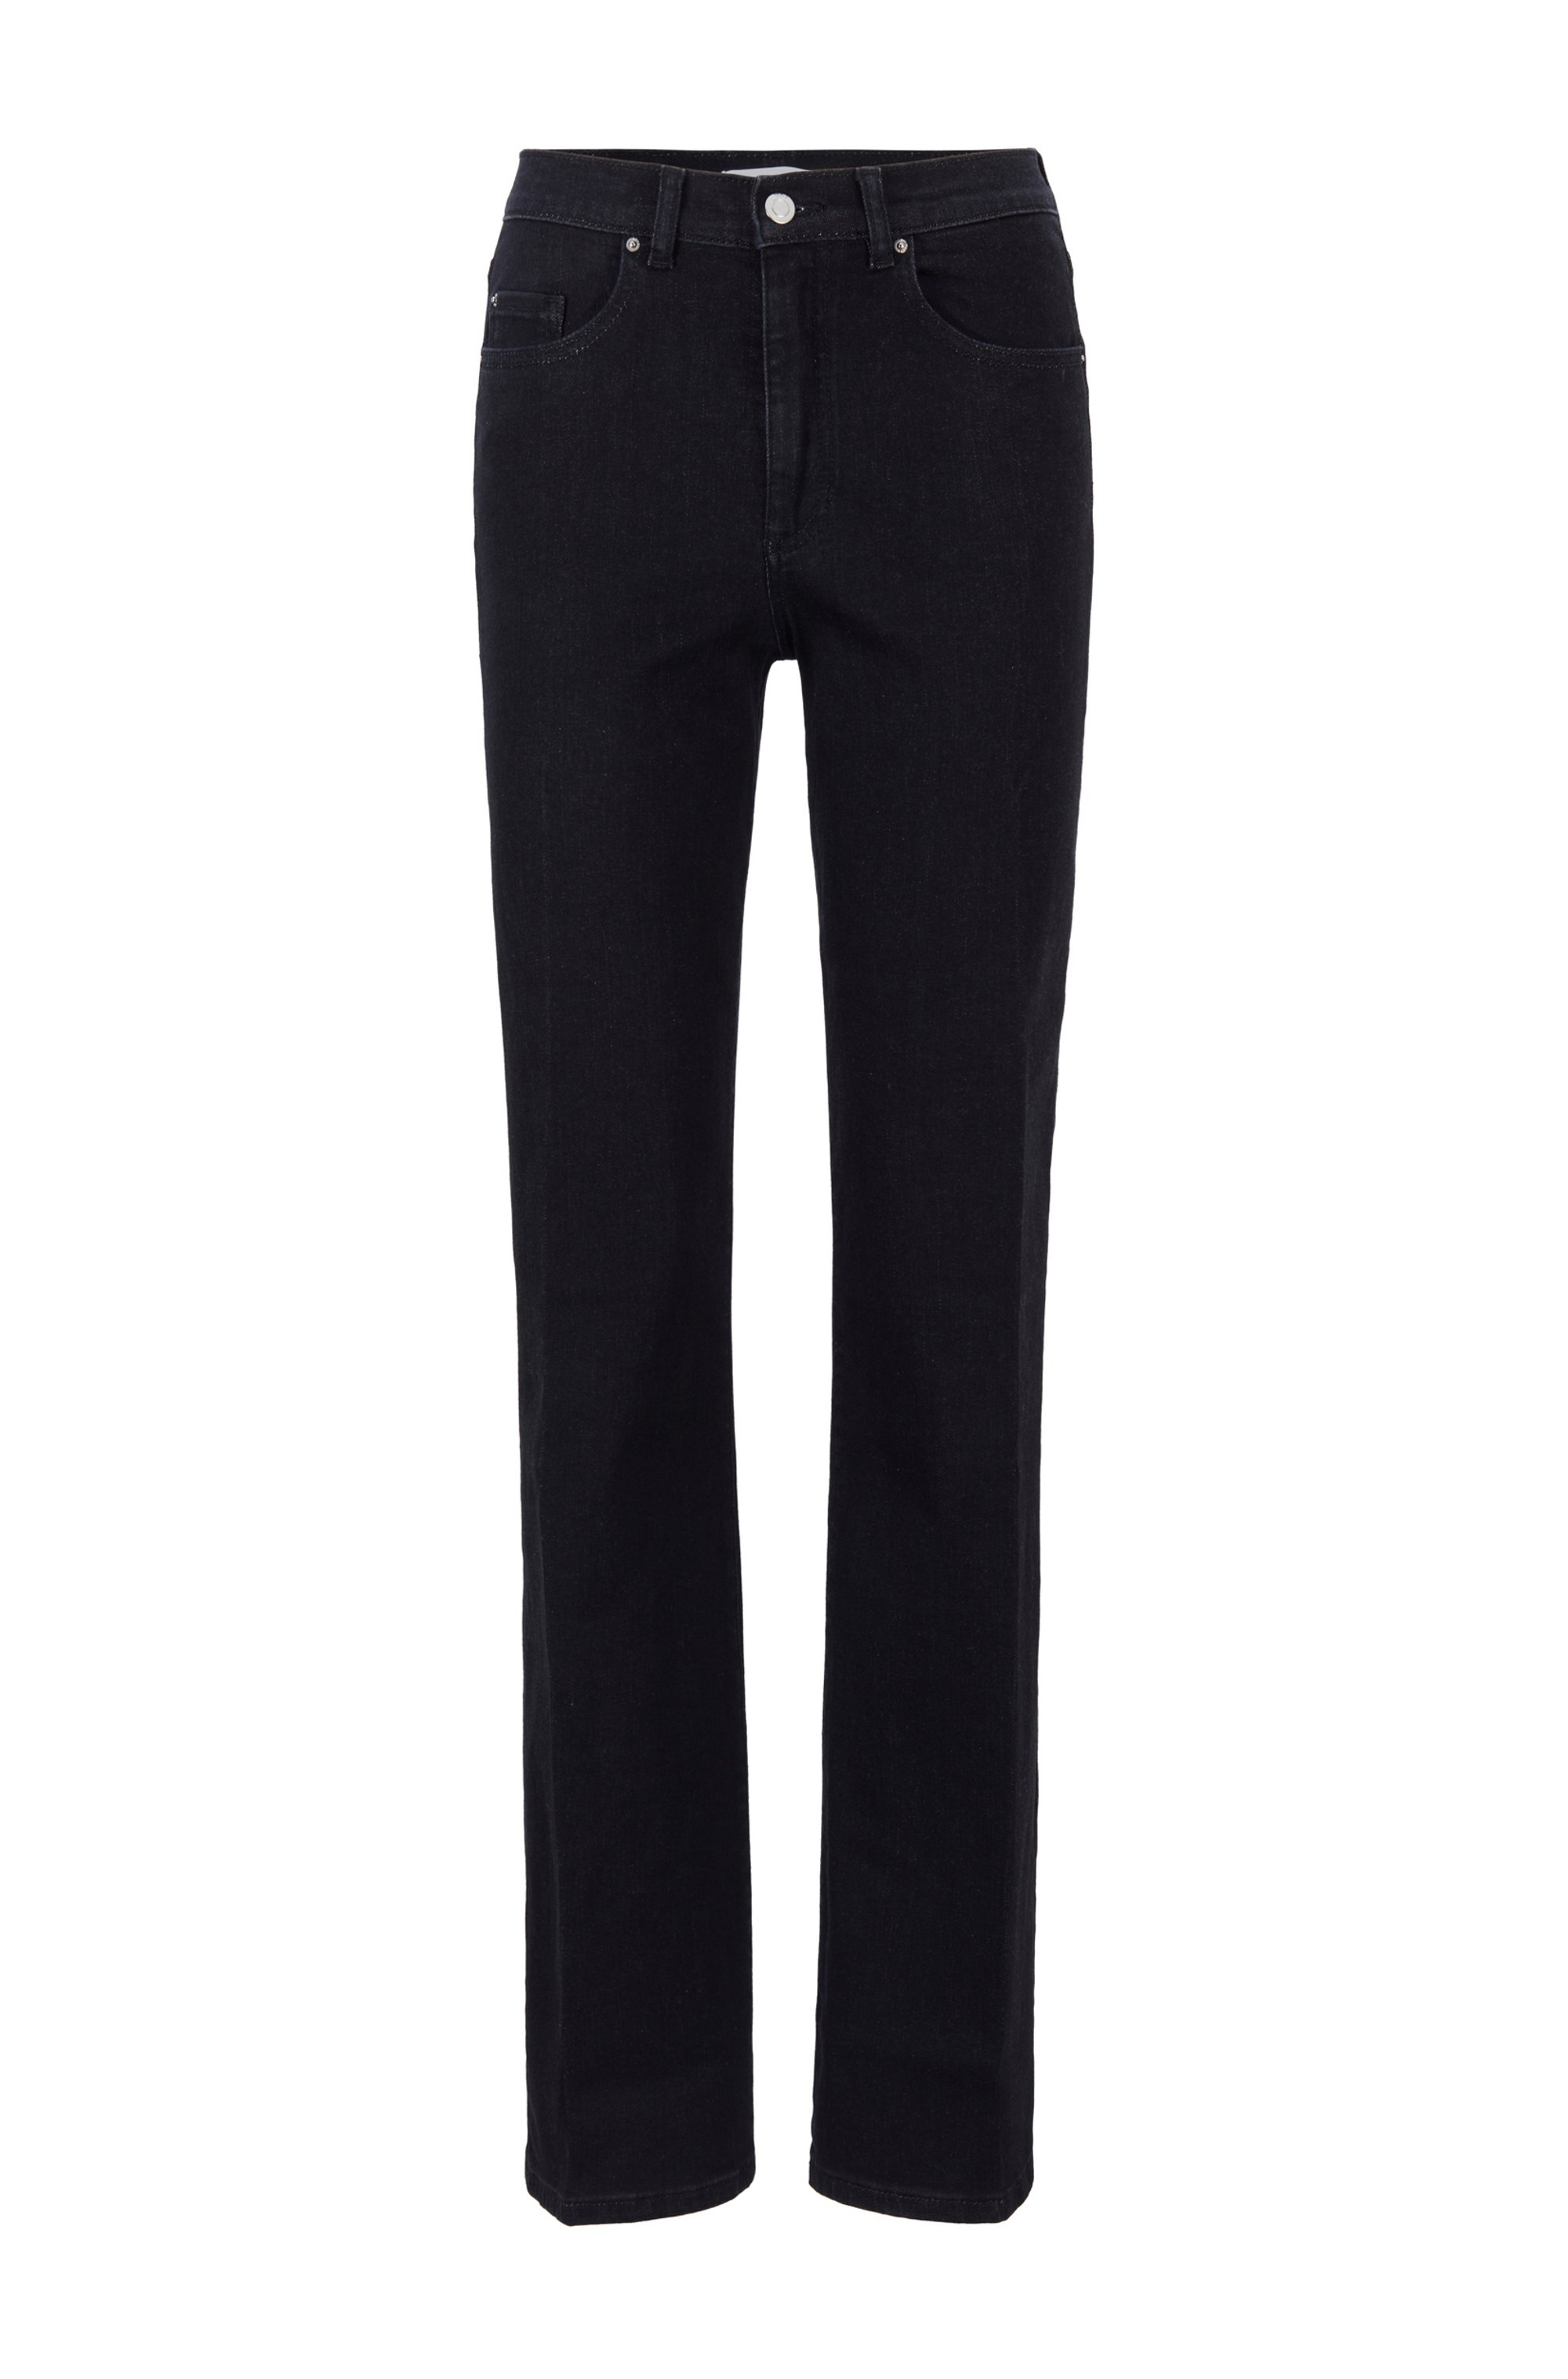 Wide-leg regular-fit jeans in blue-black denim, Black